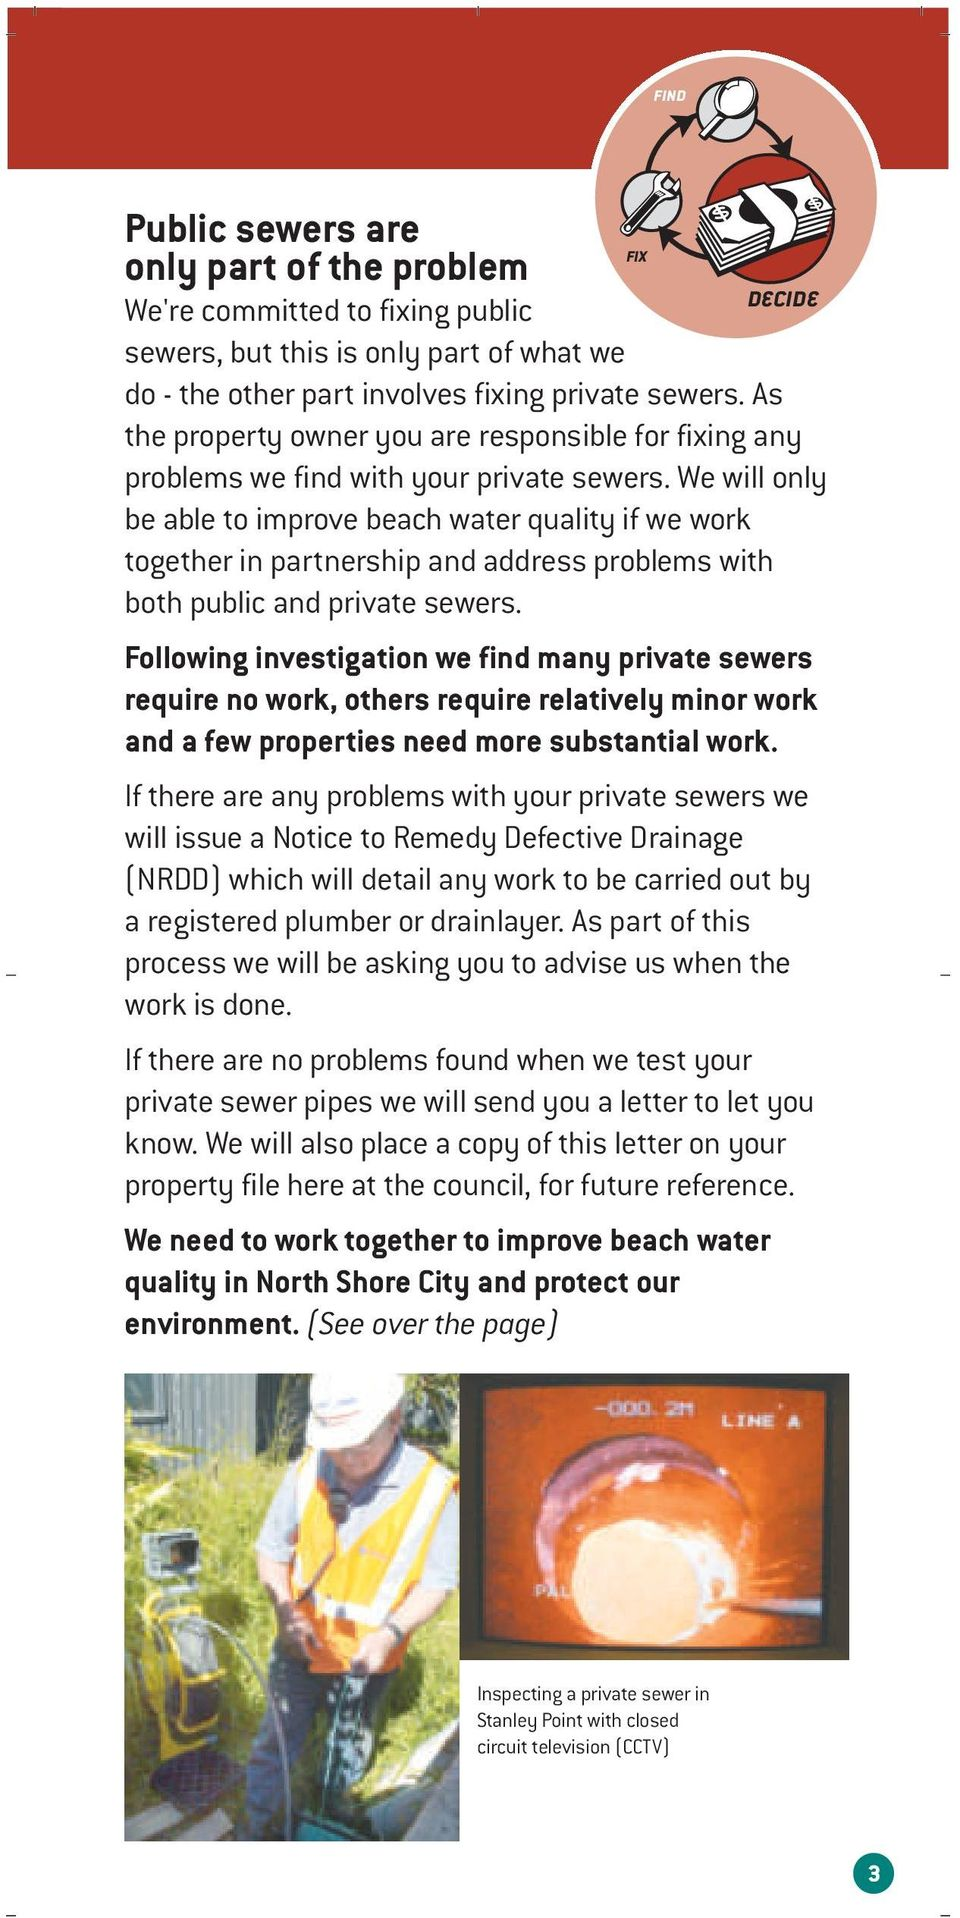 We will only be able to improve beach water quality if we work together in partnership and address problems with both public and private sewers.